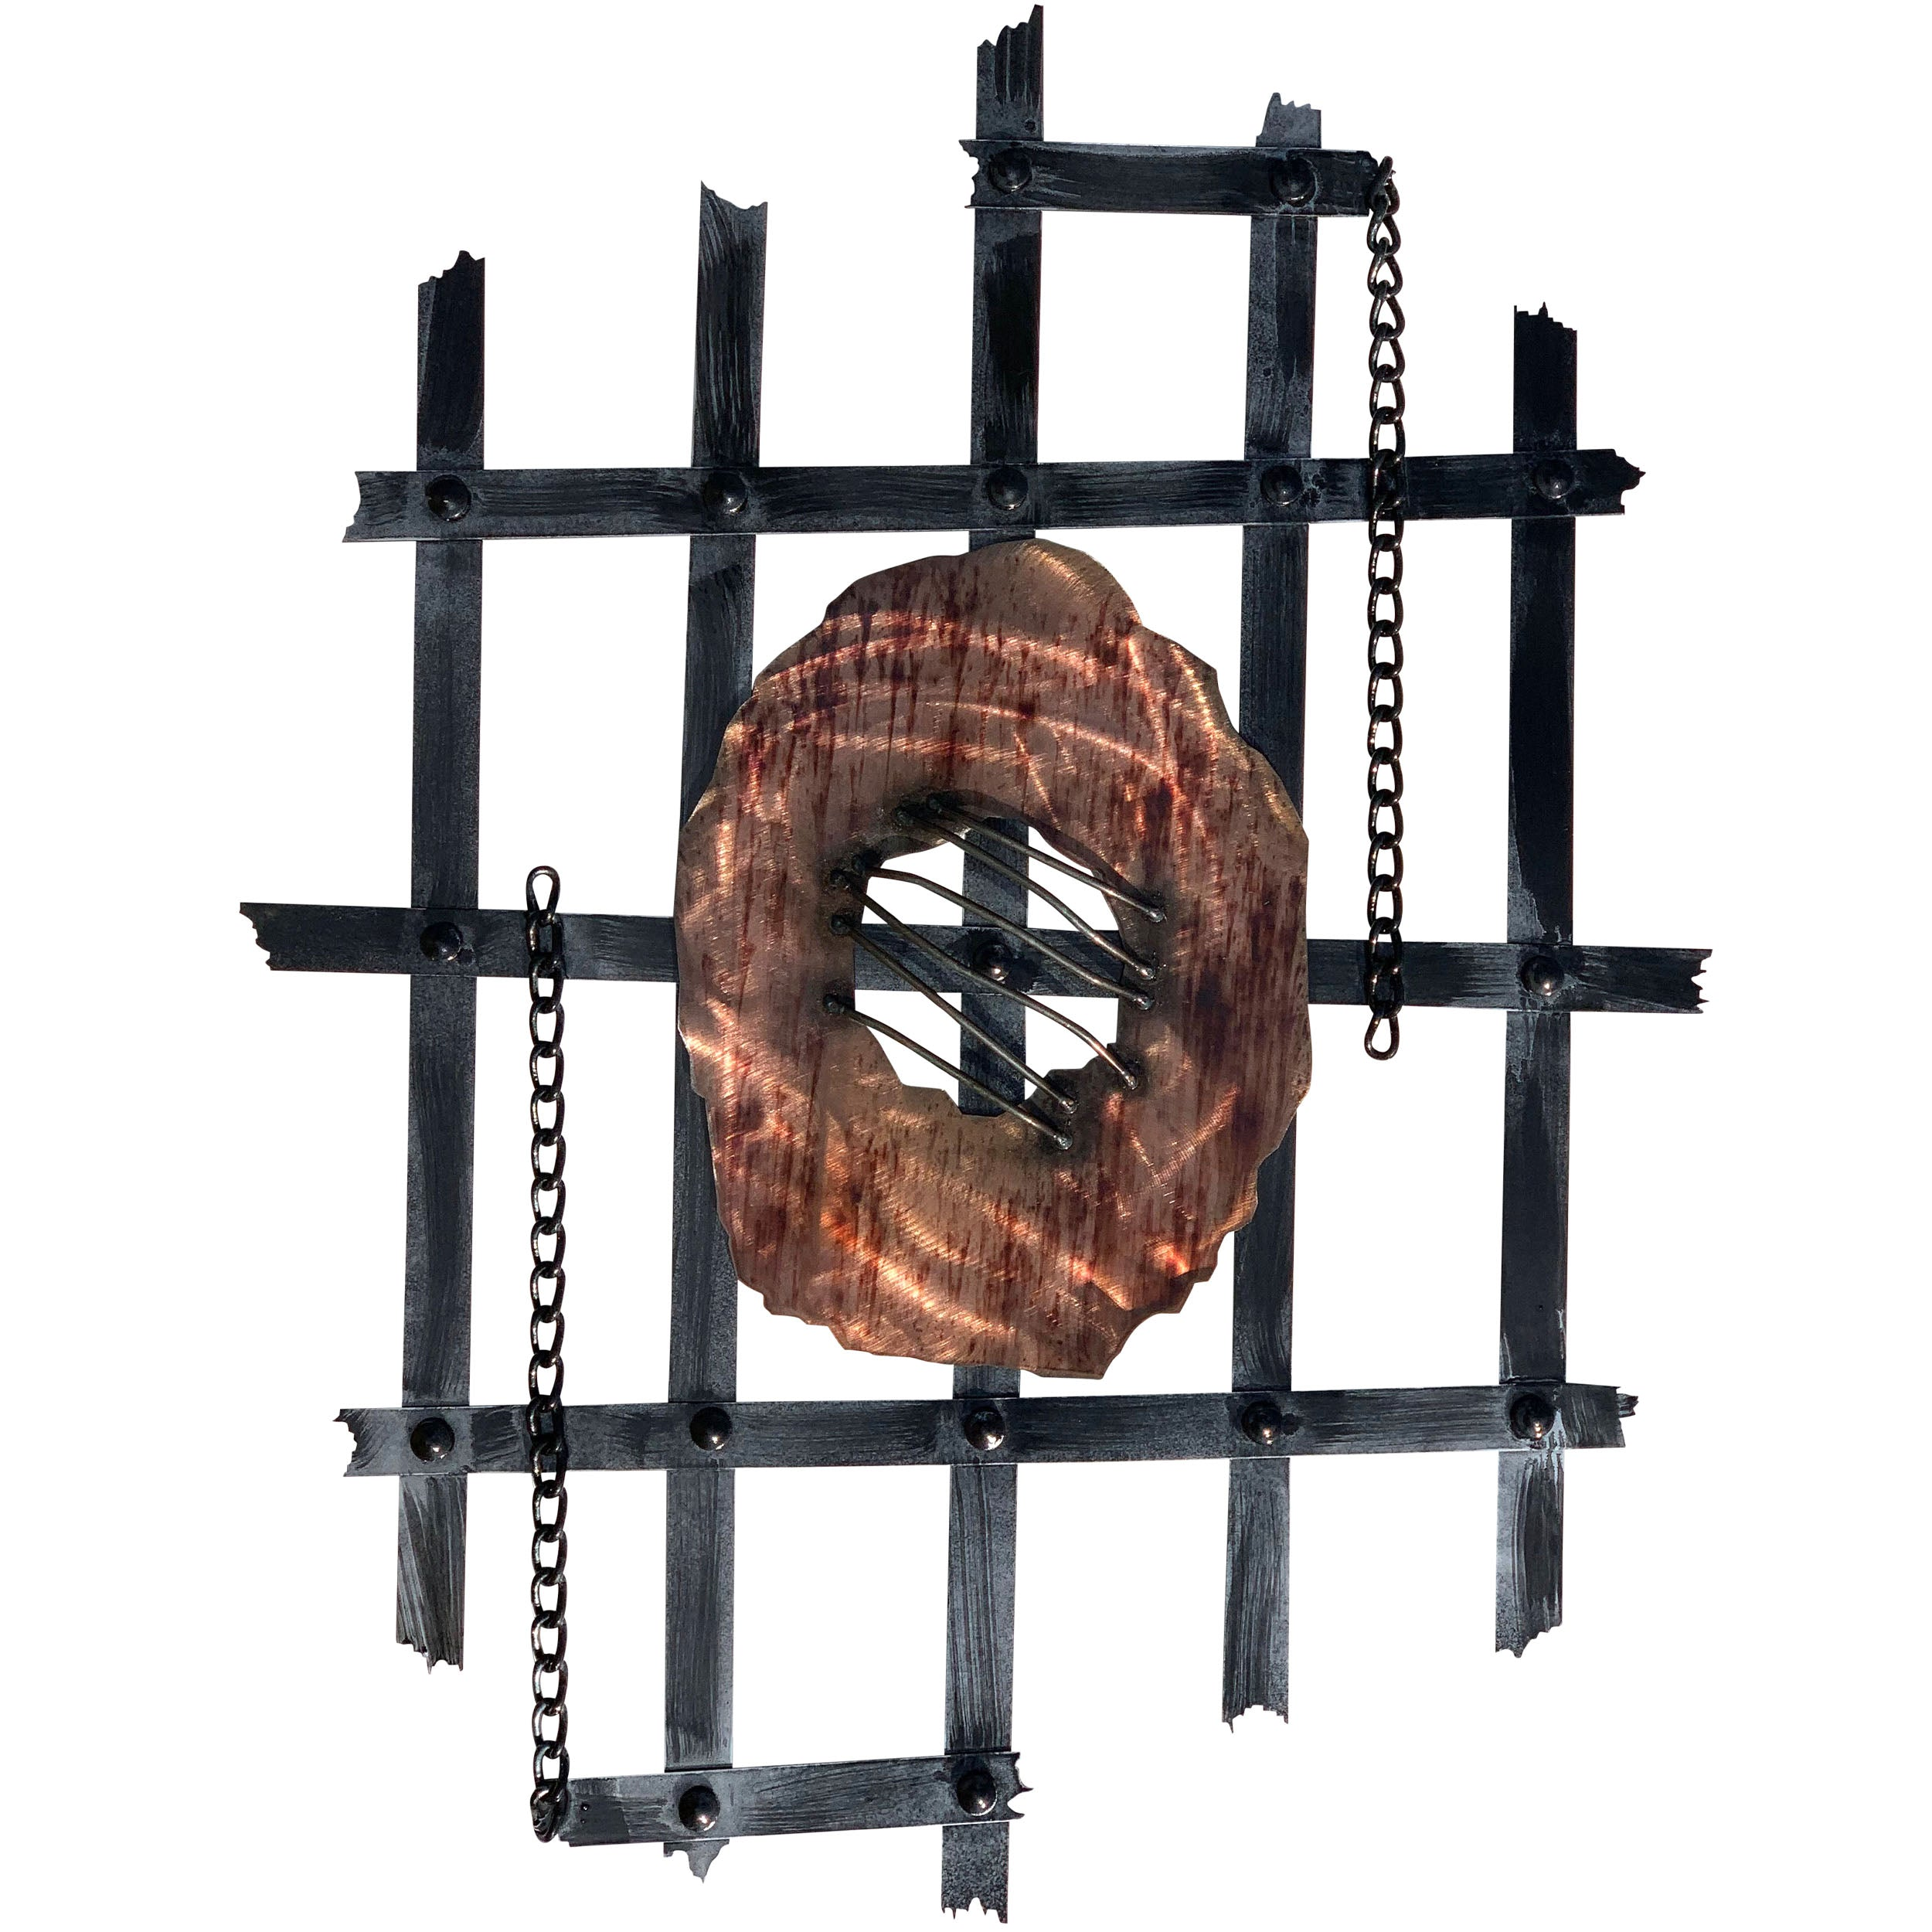 Dungeon Cell - Pot Racks Plus